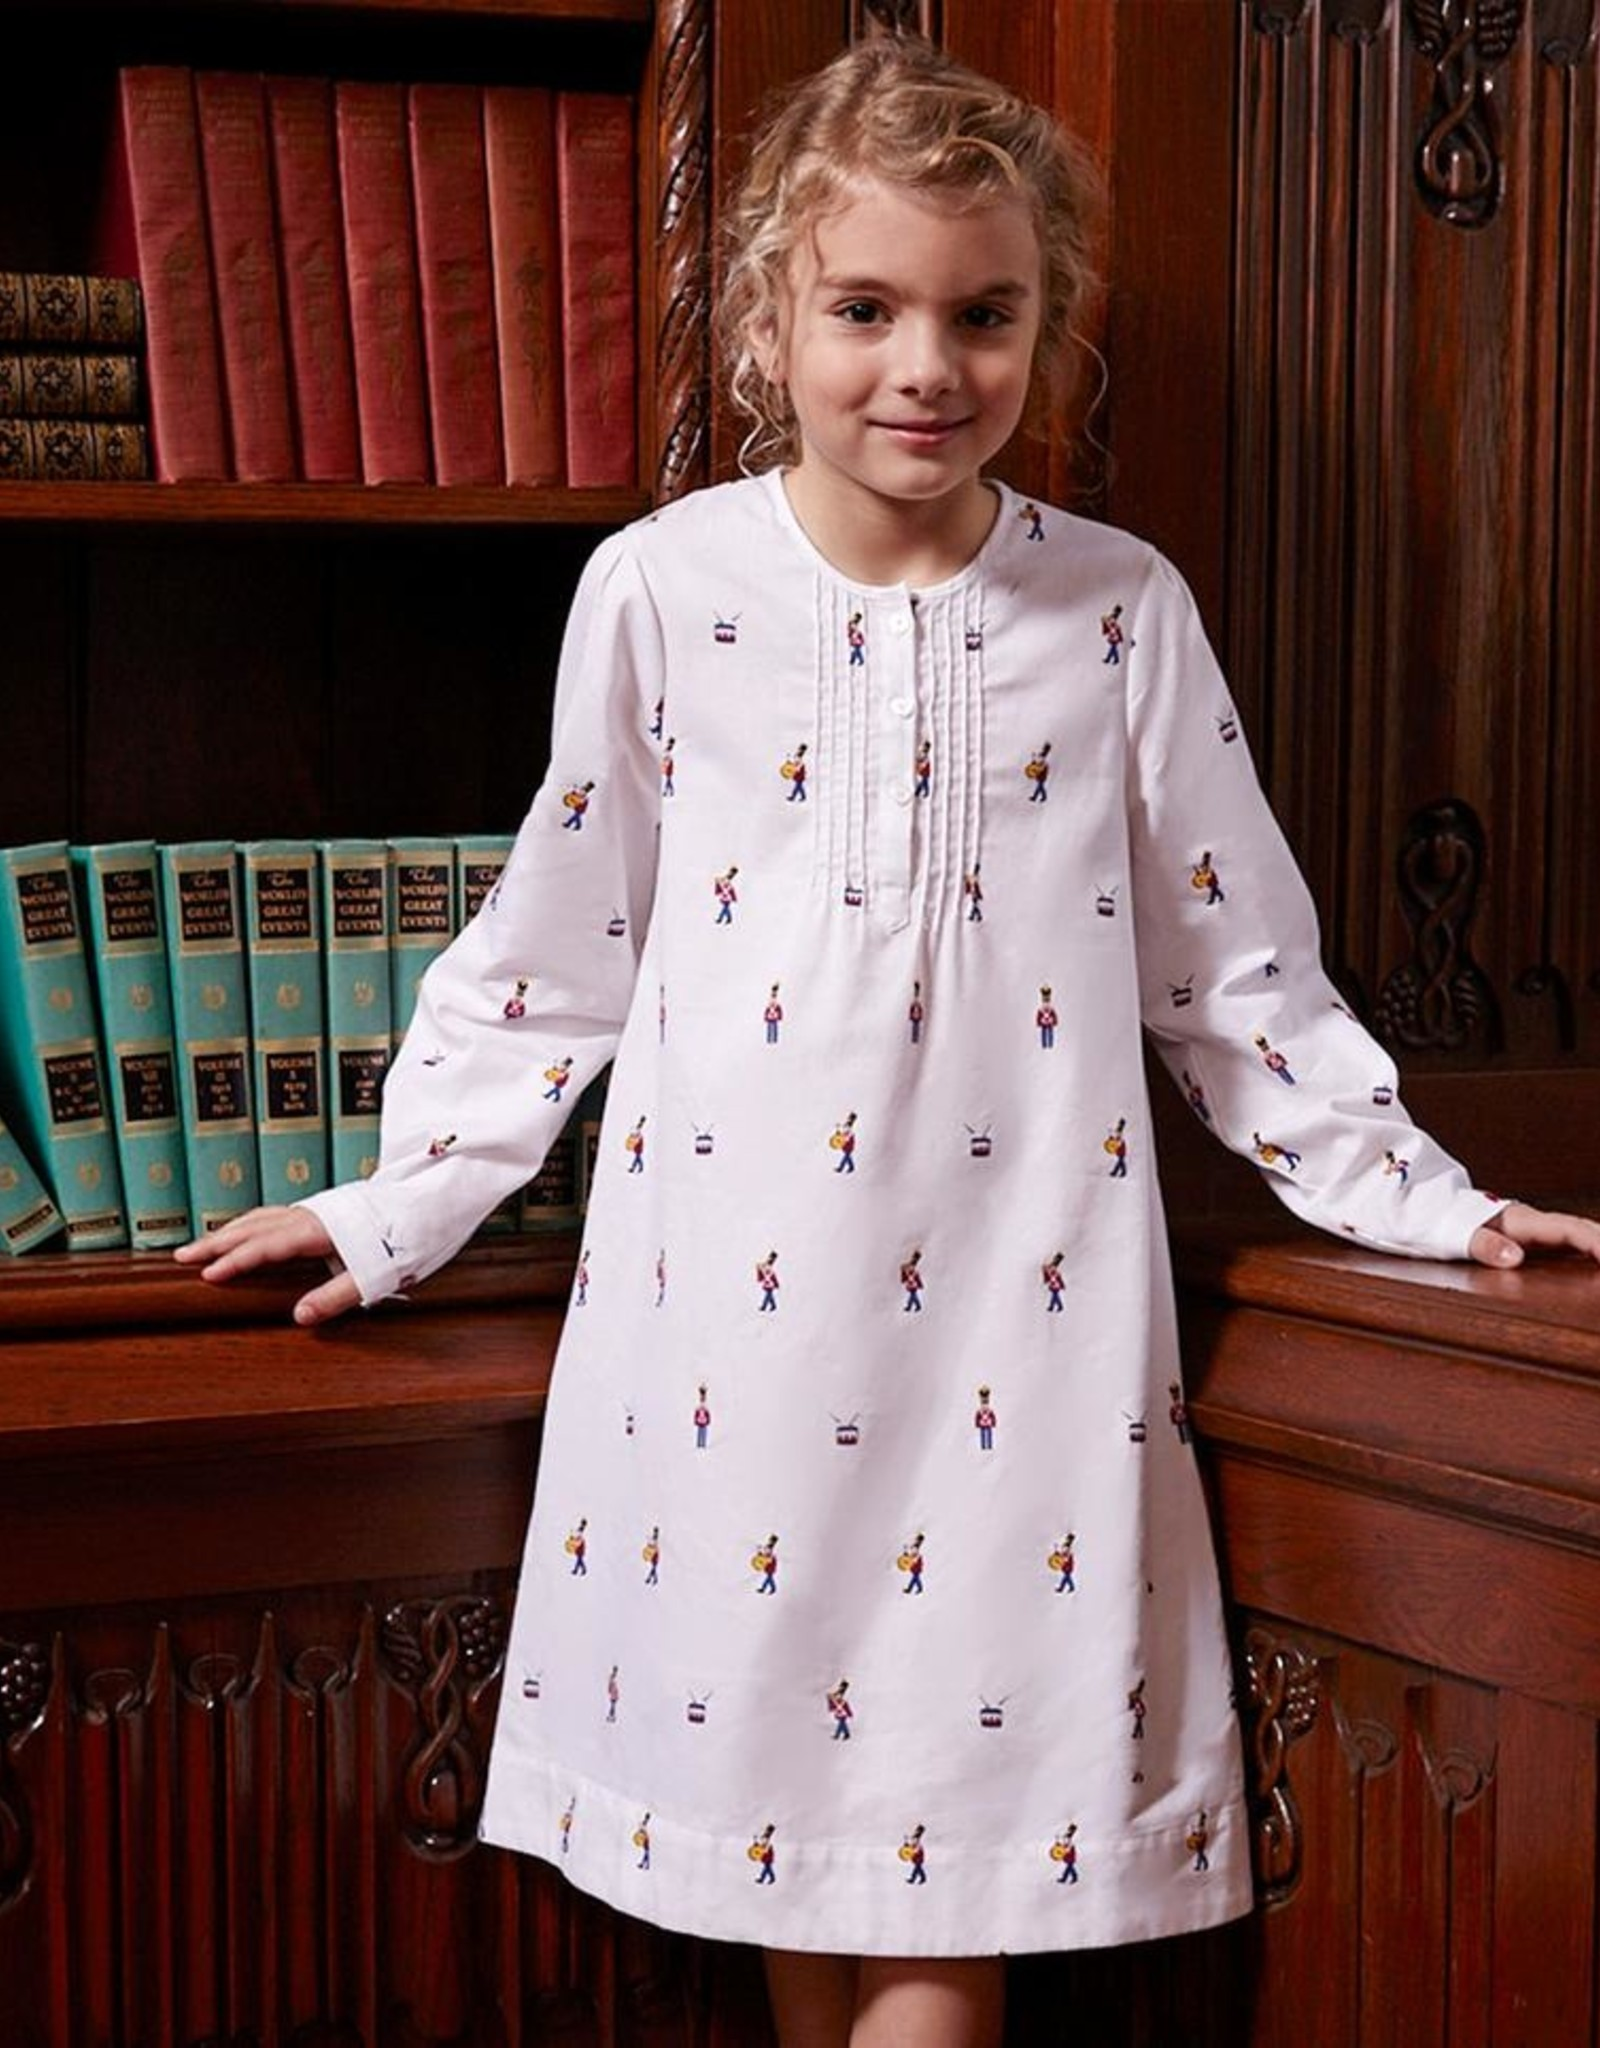 Petite Plume Toy Soldier Beatrice Nightgown